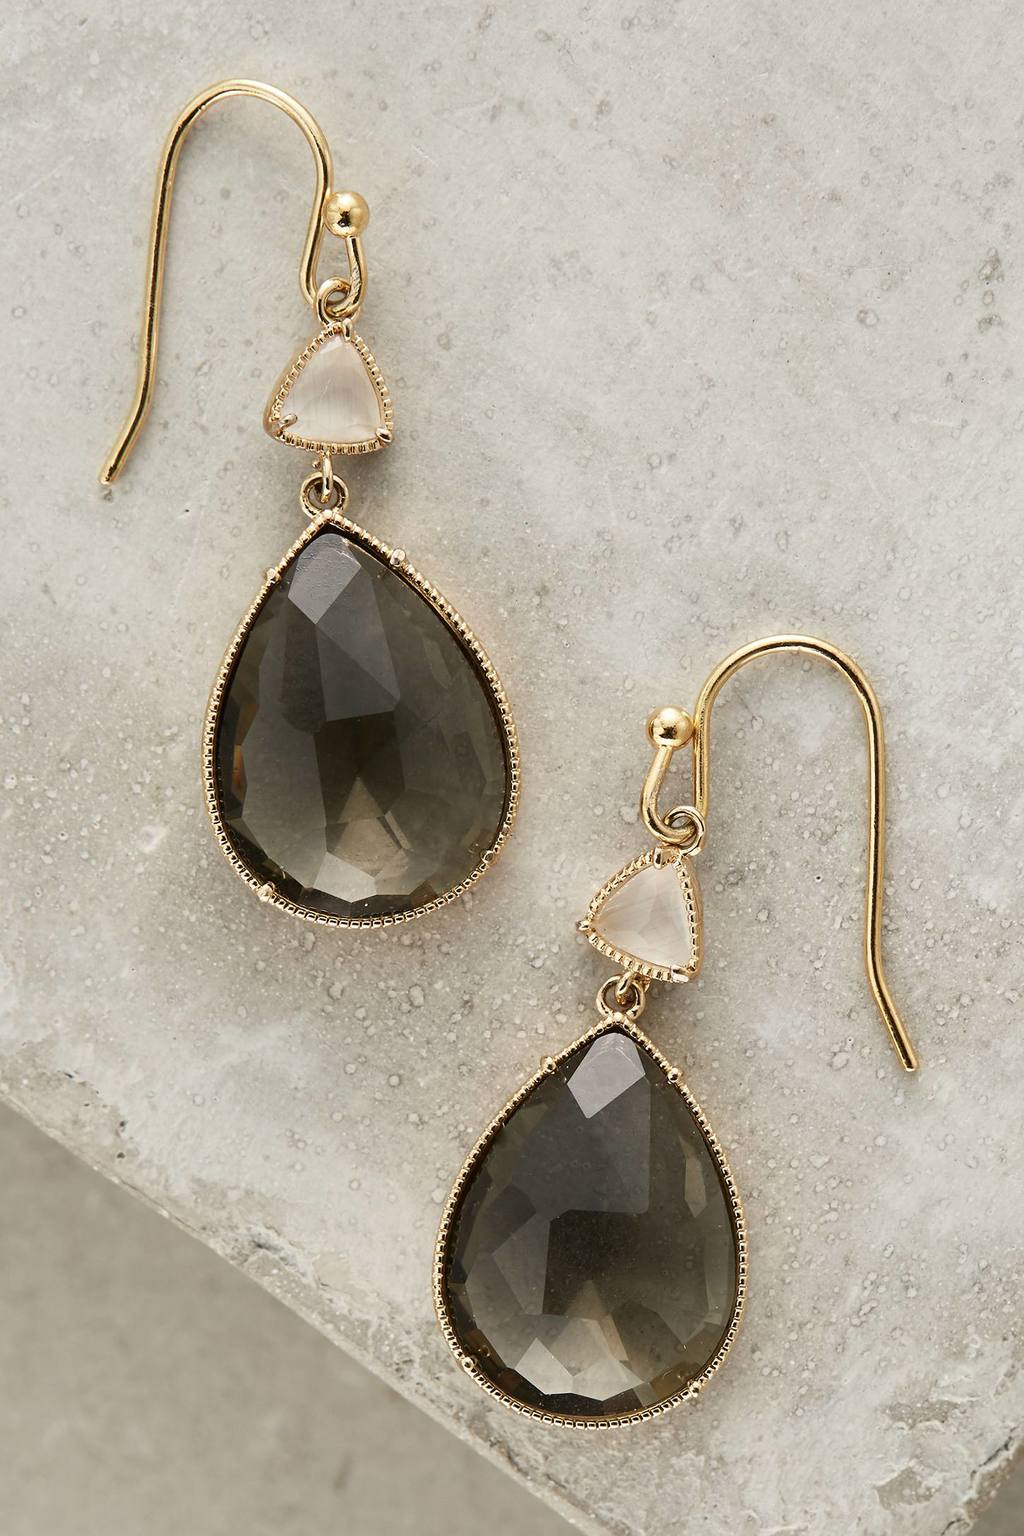 Angelle Drop Earrings - predominant colour: gold; secondary colour: mid grey; occasions: evening, occasion; style: drop; length: mid; size: standard; material: chain/metal; fastening: pierced; finish: metallic; embellishment: jewels/stone; season: s/s 2016; wardrobe: event